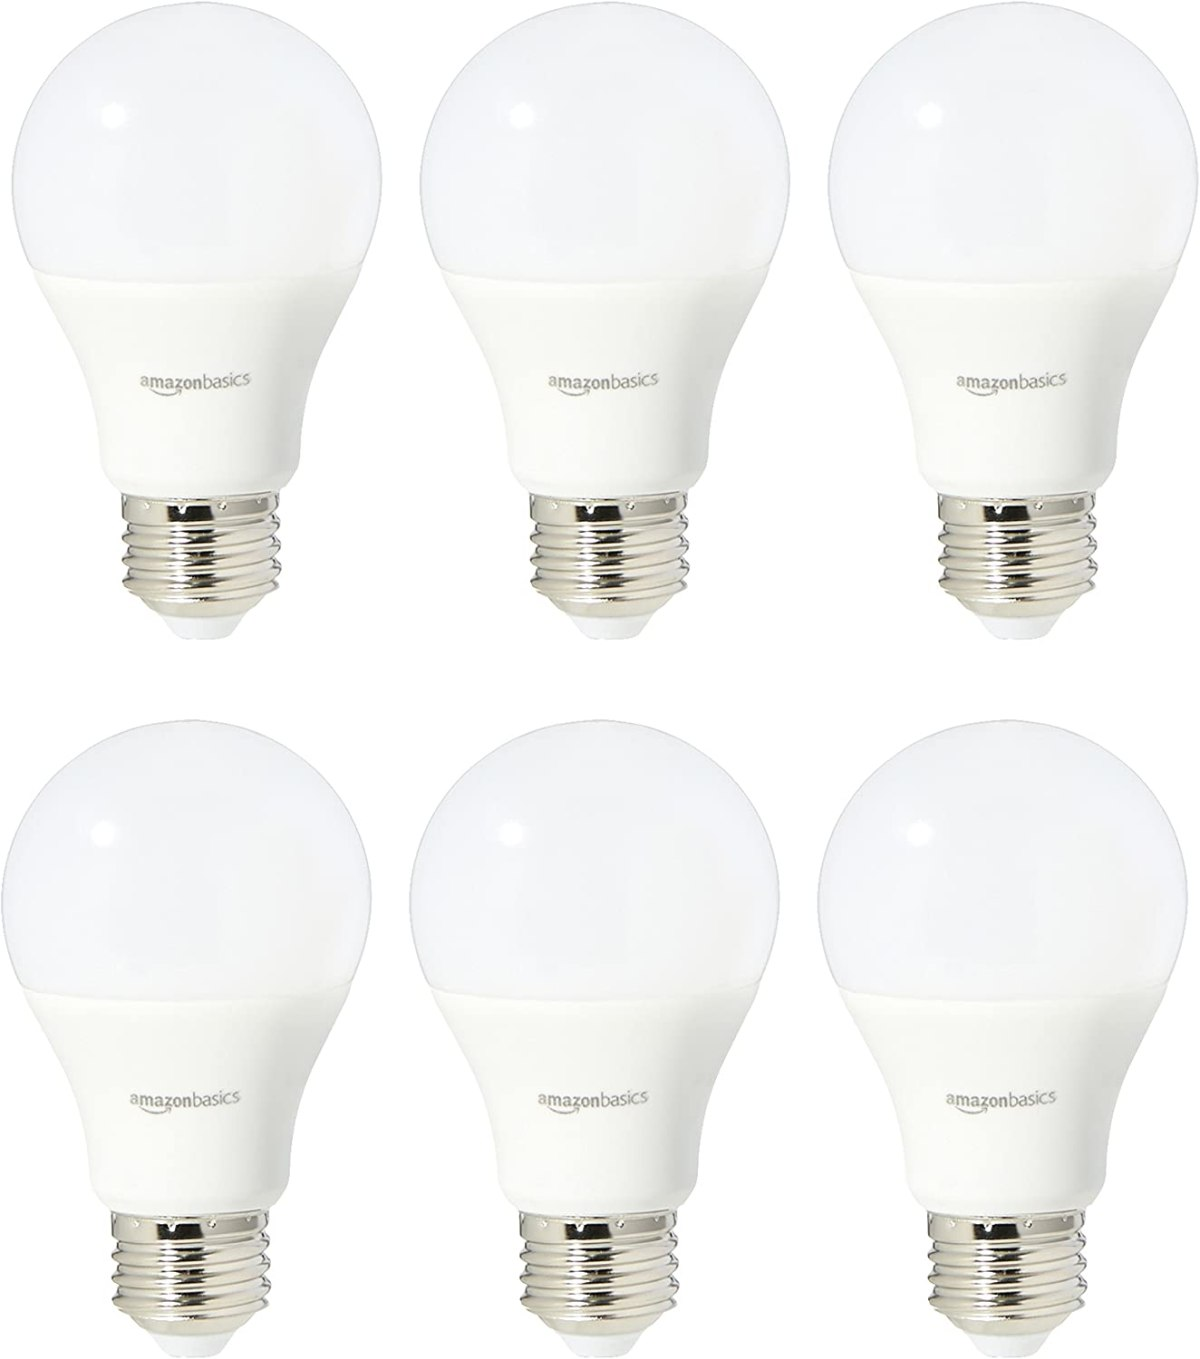 AmazonBasics 60 Watt Equivalent, Daylight, Non-Dimmable